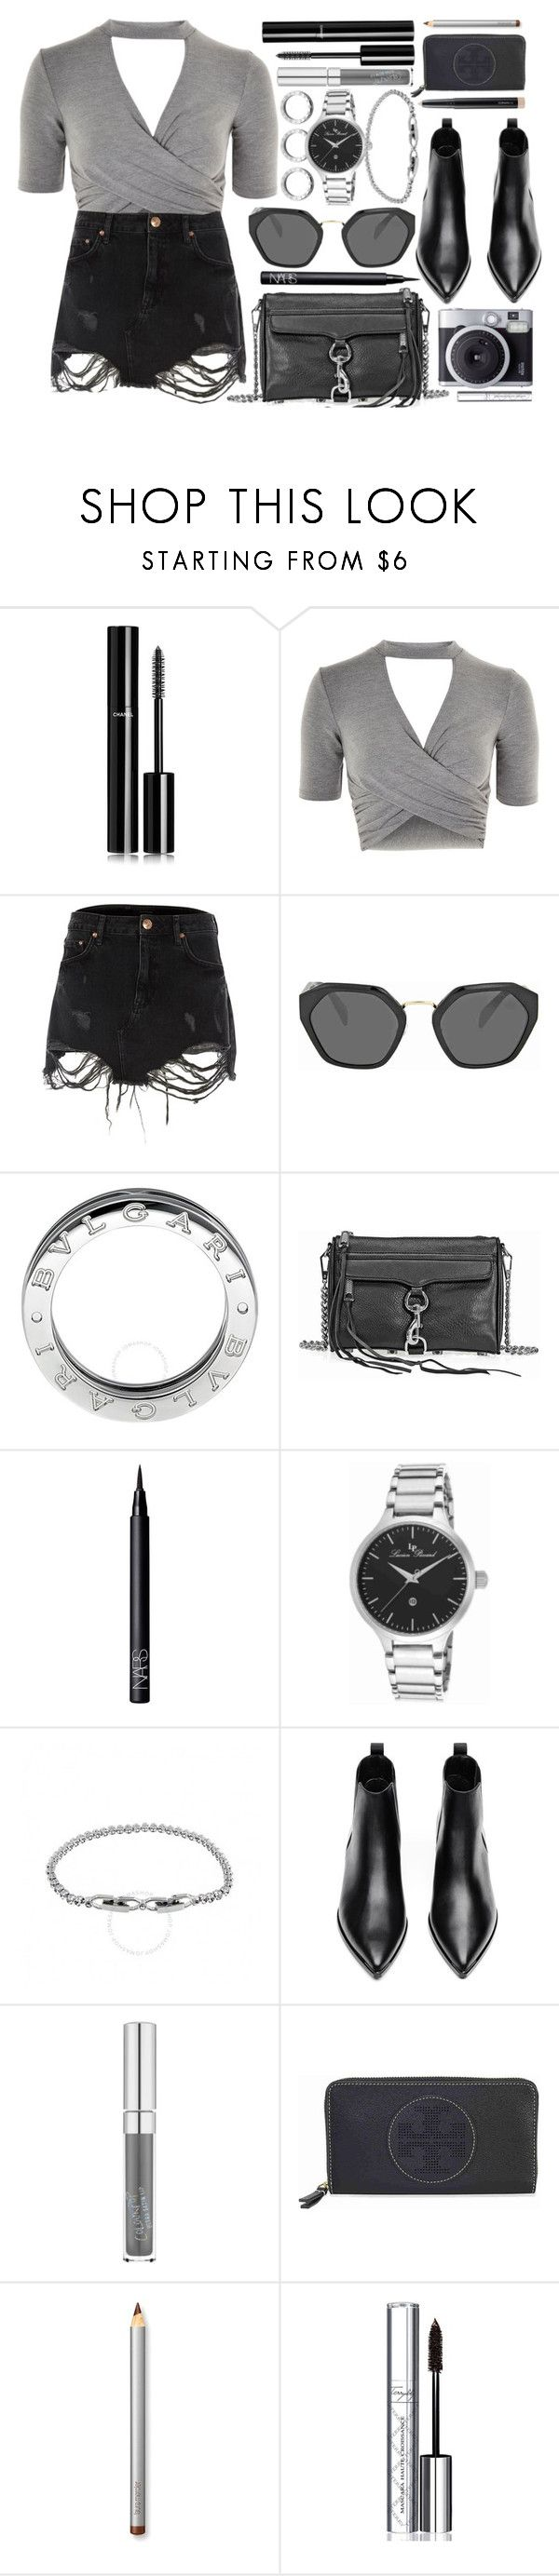 """""""Attitude"""" by jomashop ❤ liked on Polyvore featuring Chanel, Topshop, River Island, Prada, Bulgari, Rebecca Minkoff, NARS Cosmetics, Lucien Piccard, Acne Studios and Tory Burch"""